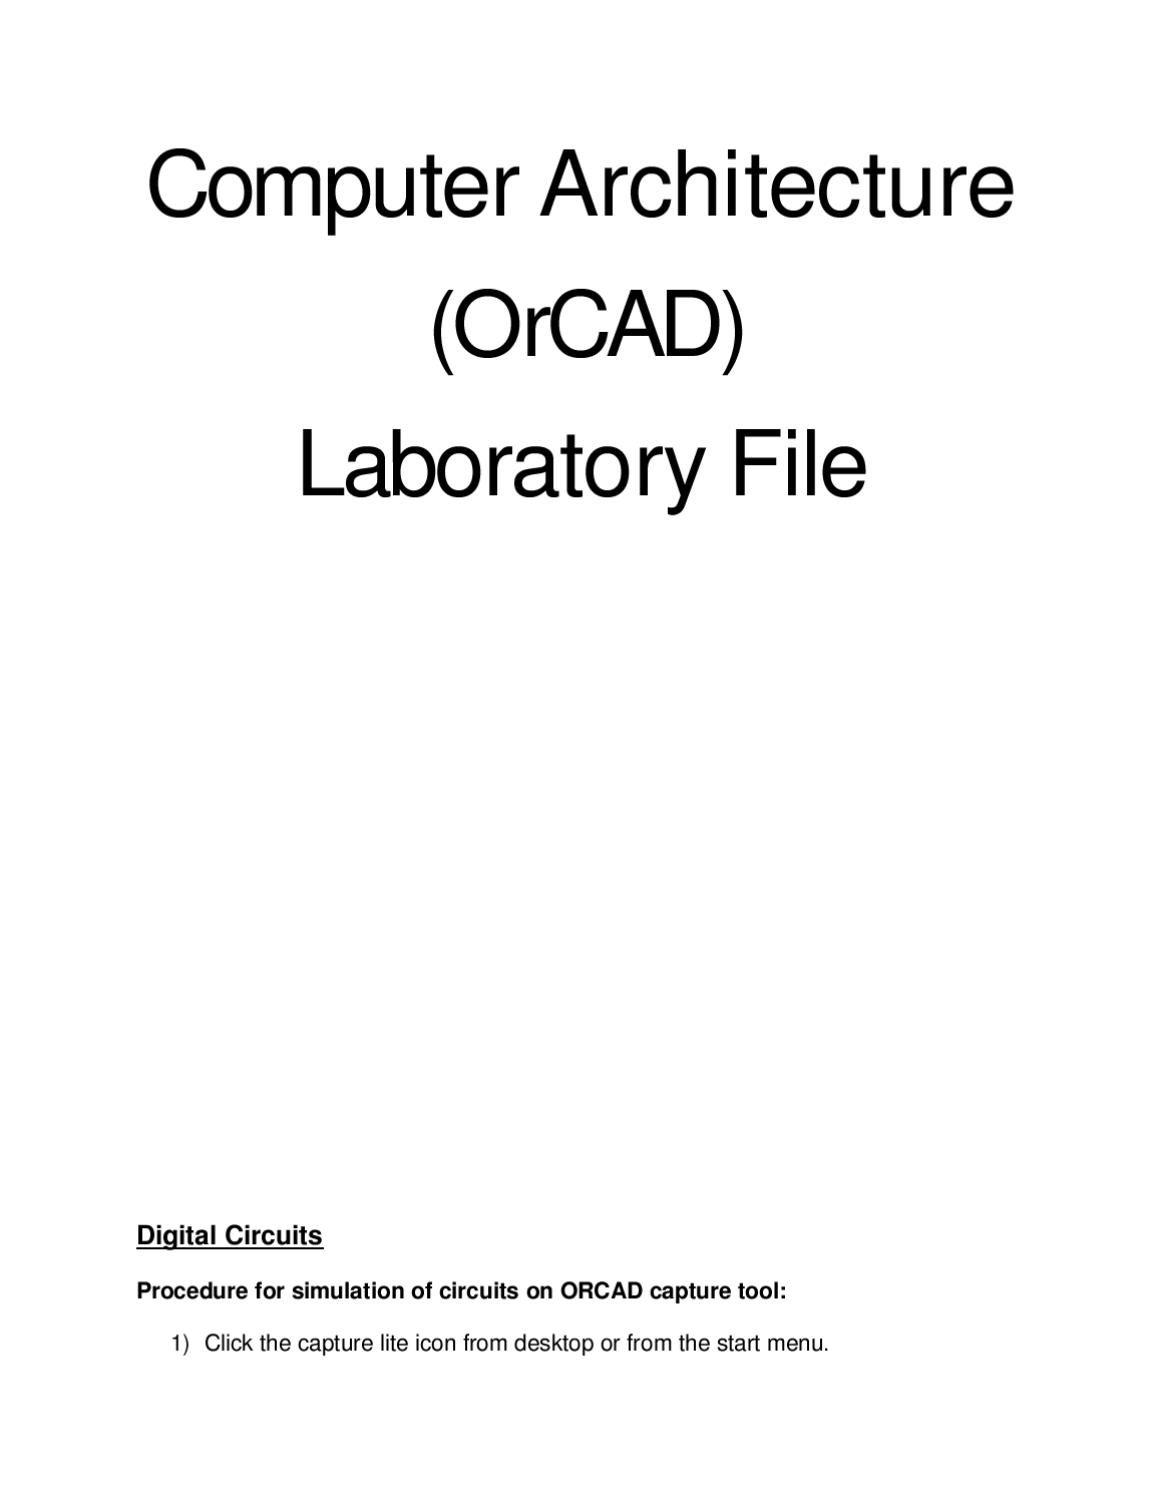 Dcs lab file by nilesh varshney issuu pooptronica